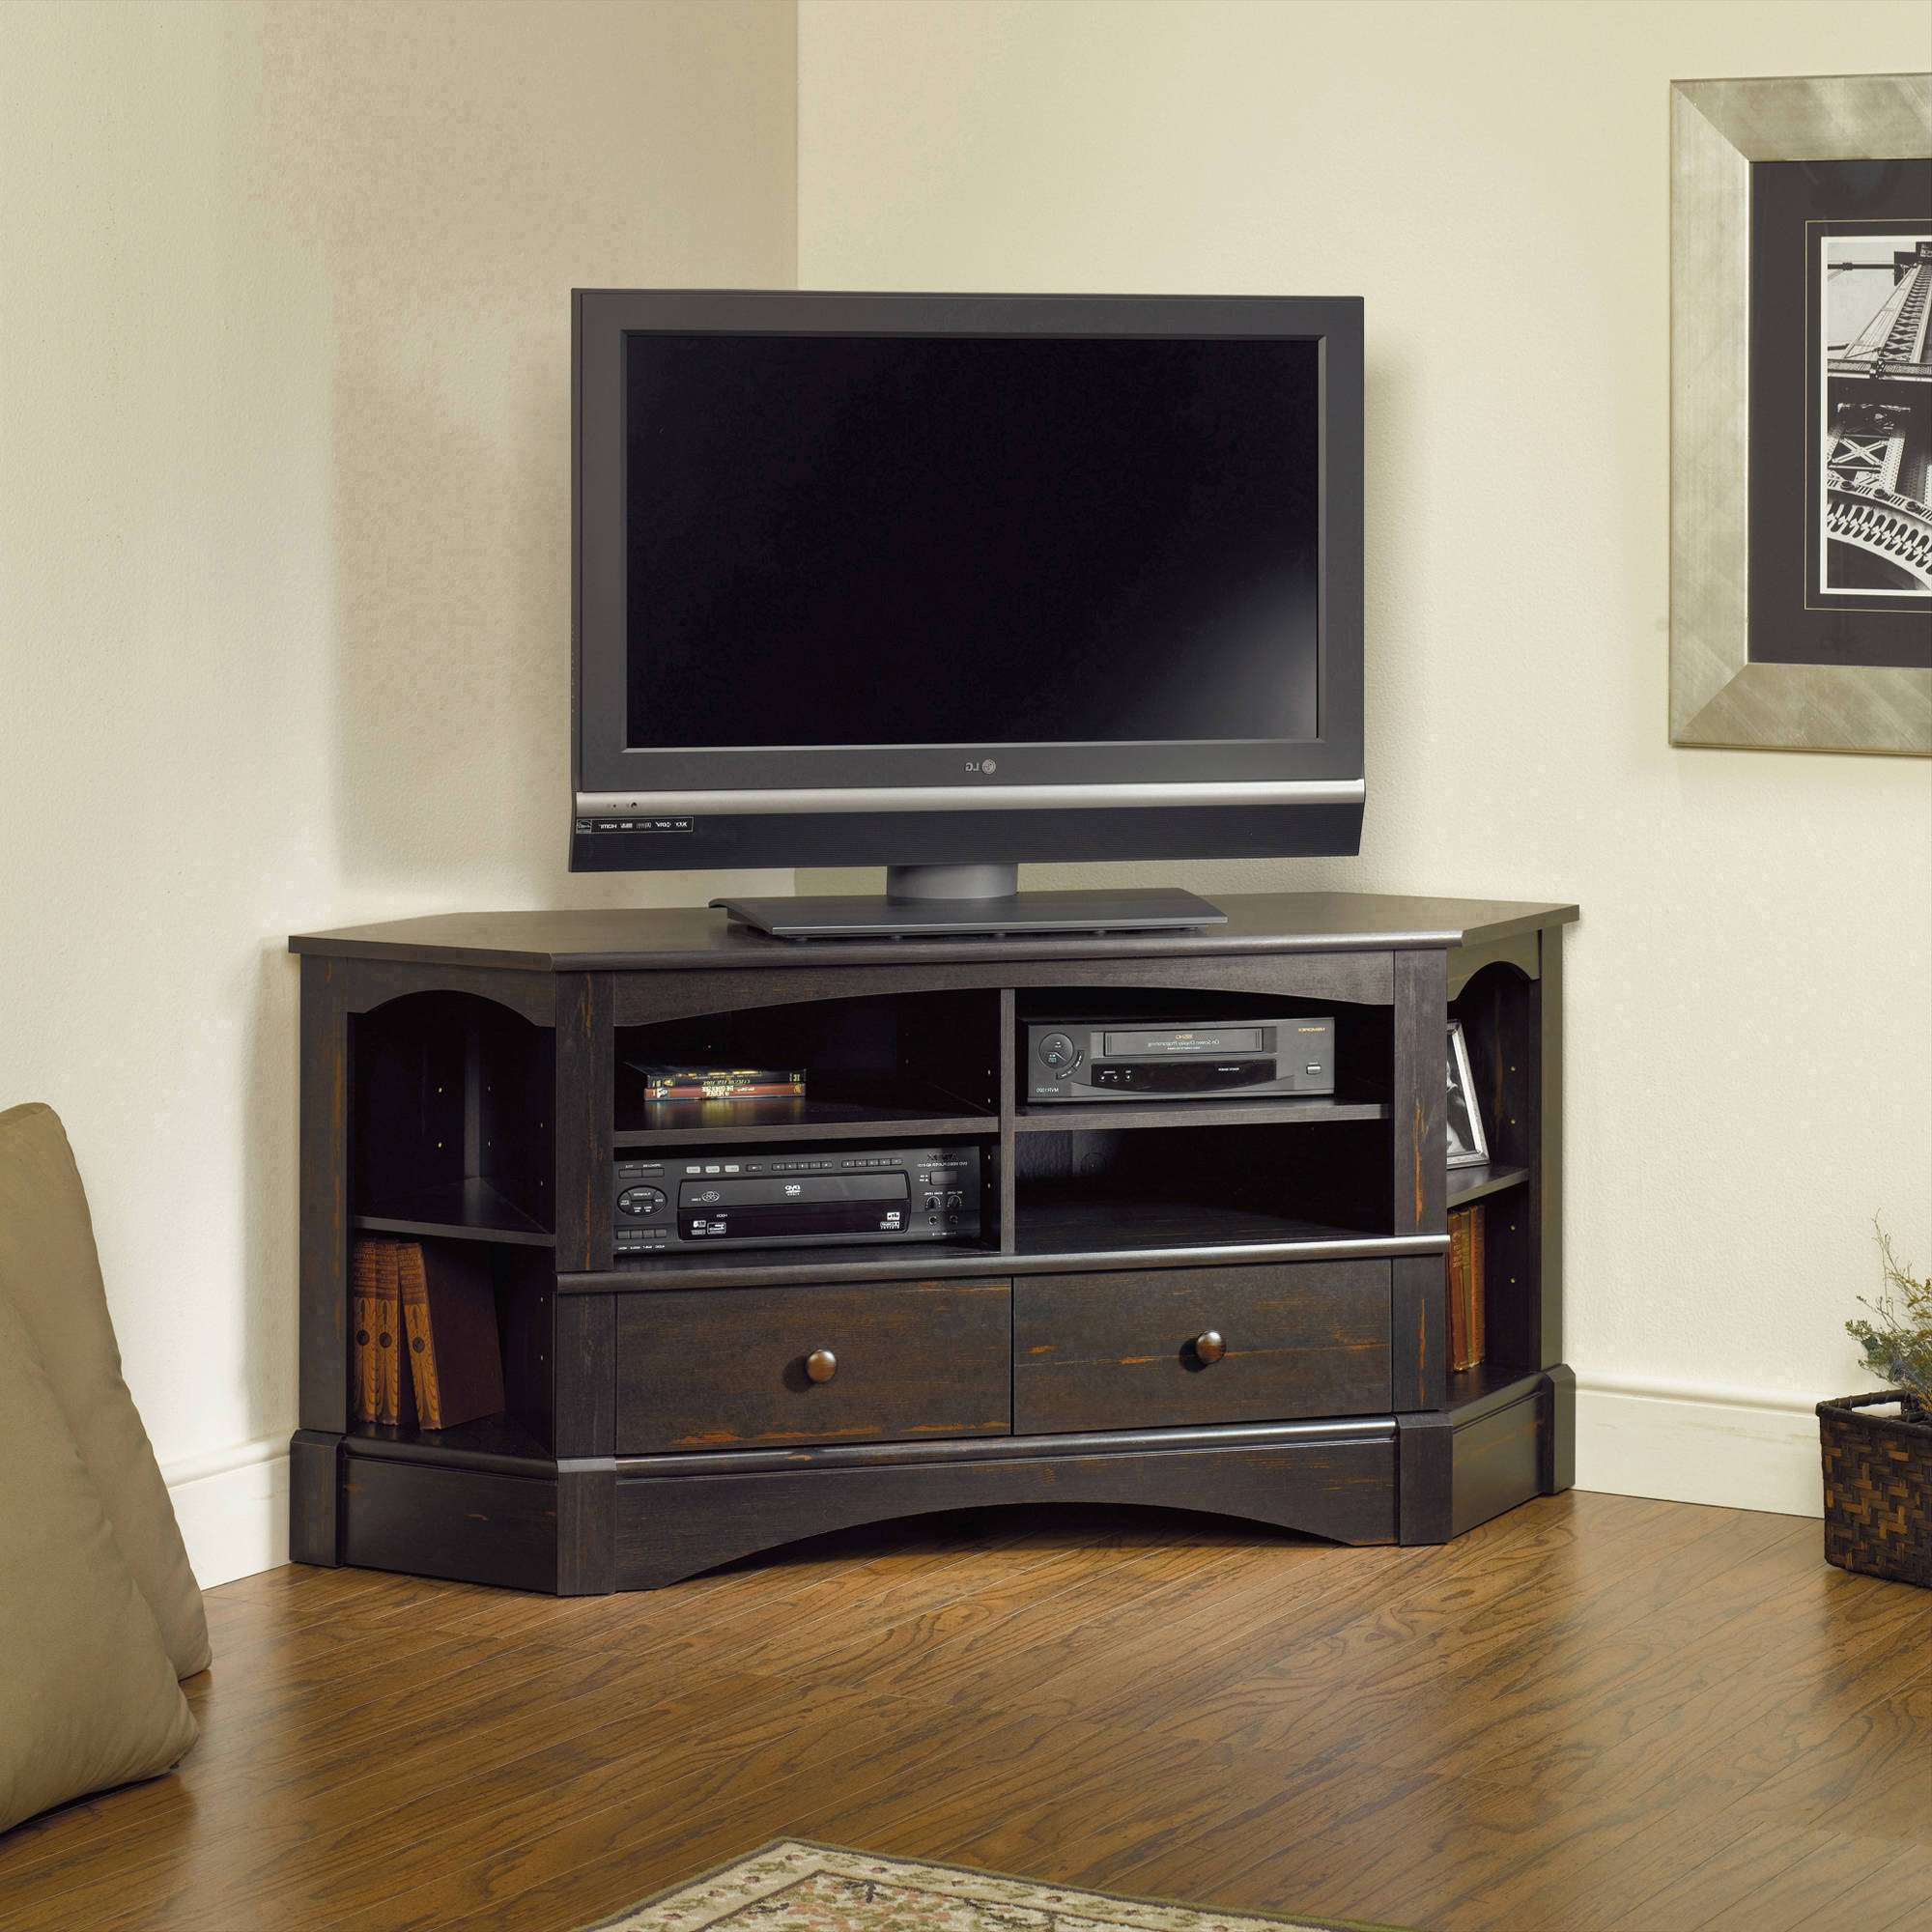 Tv Stand : 32 Unusual 55 Inch Corner Tv Stand With Mount Images In 32 Inch Corner Tv Stands (View 11 of 15)